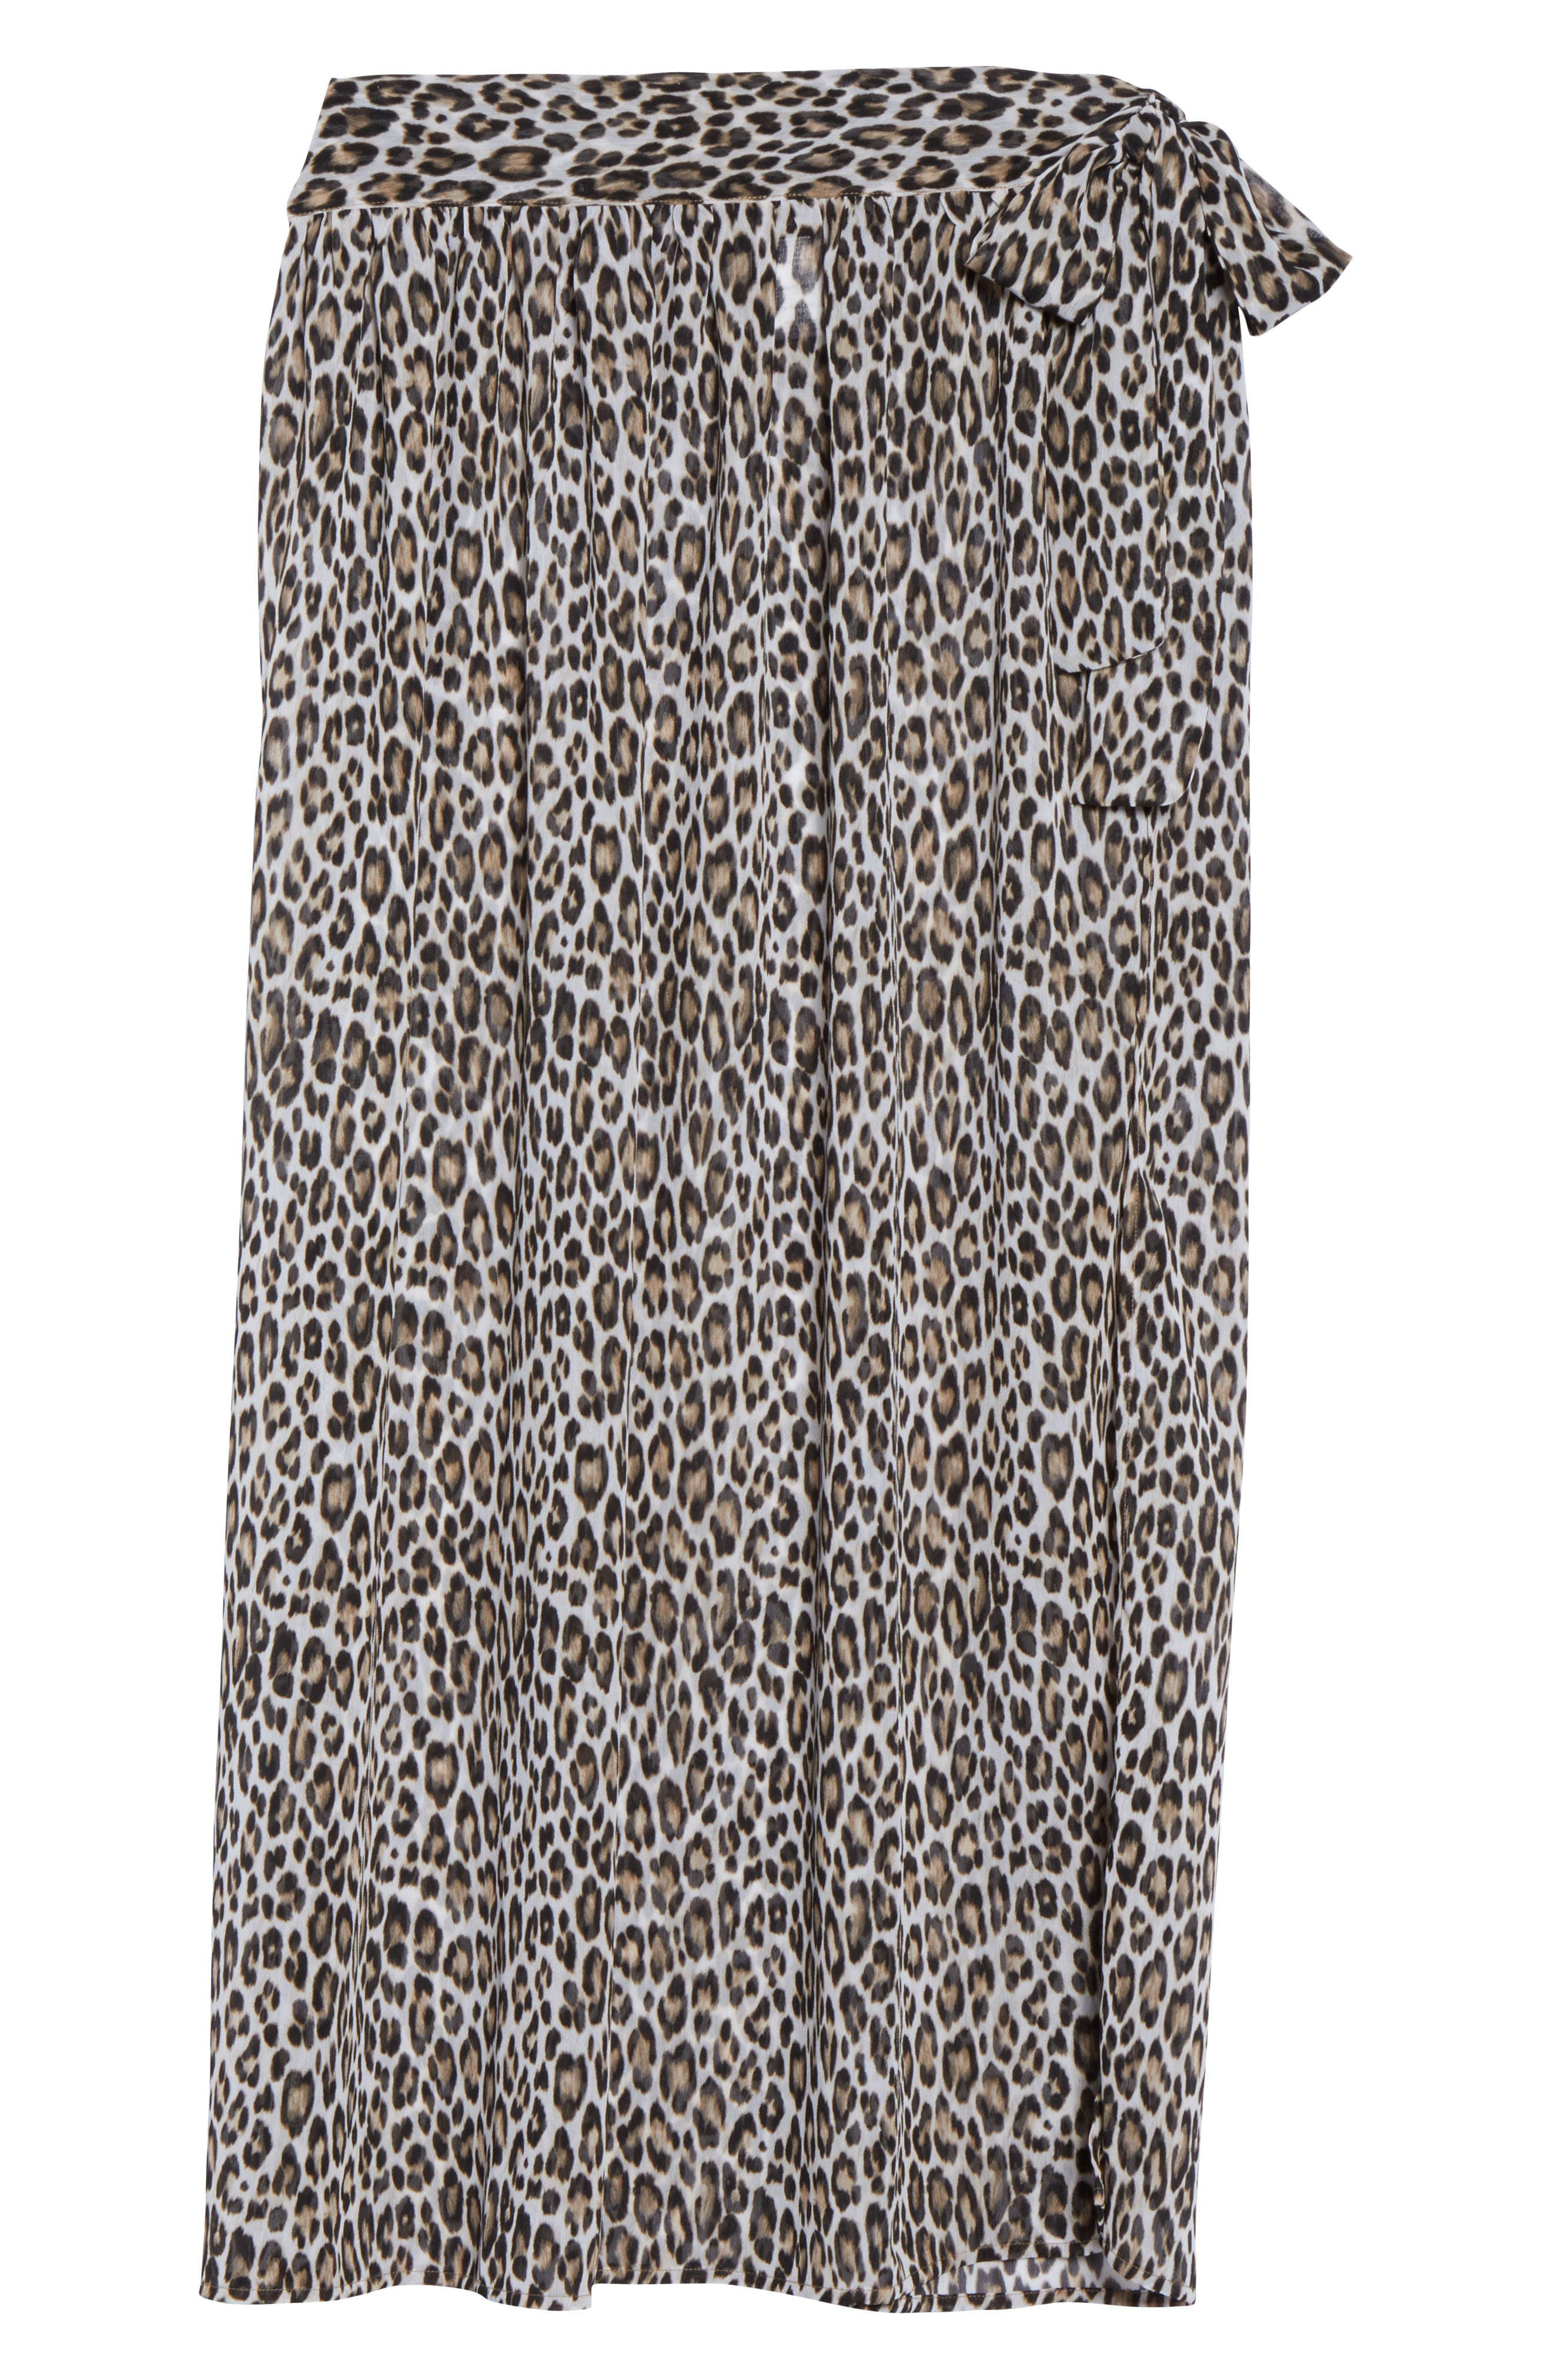 Cat's Meow Cover-Up Maxi Skirt,                             Alternate thumbnail 6, color,                             Handlewood